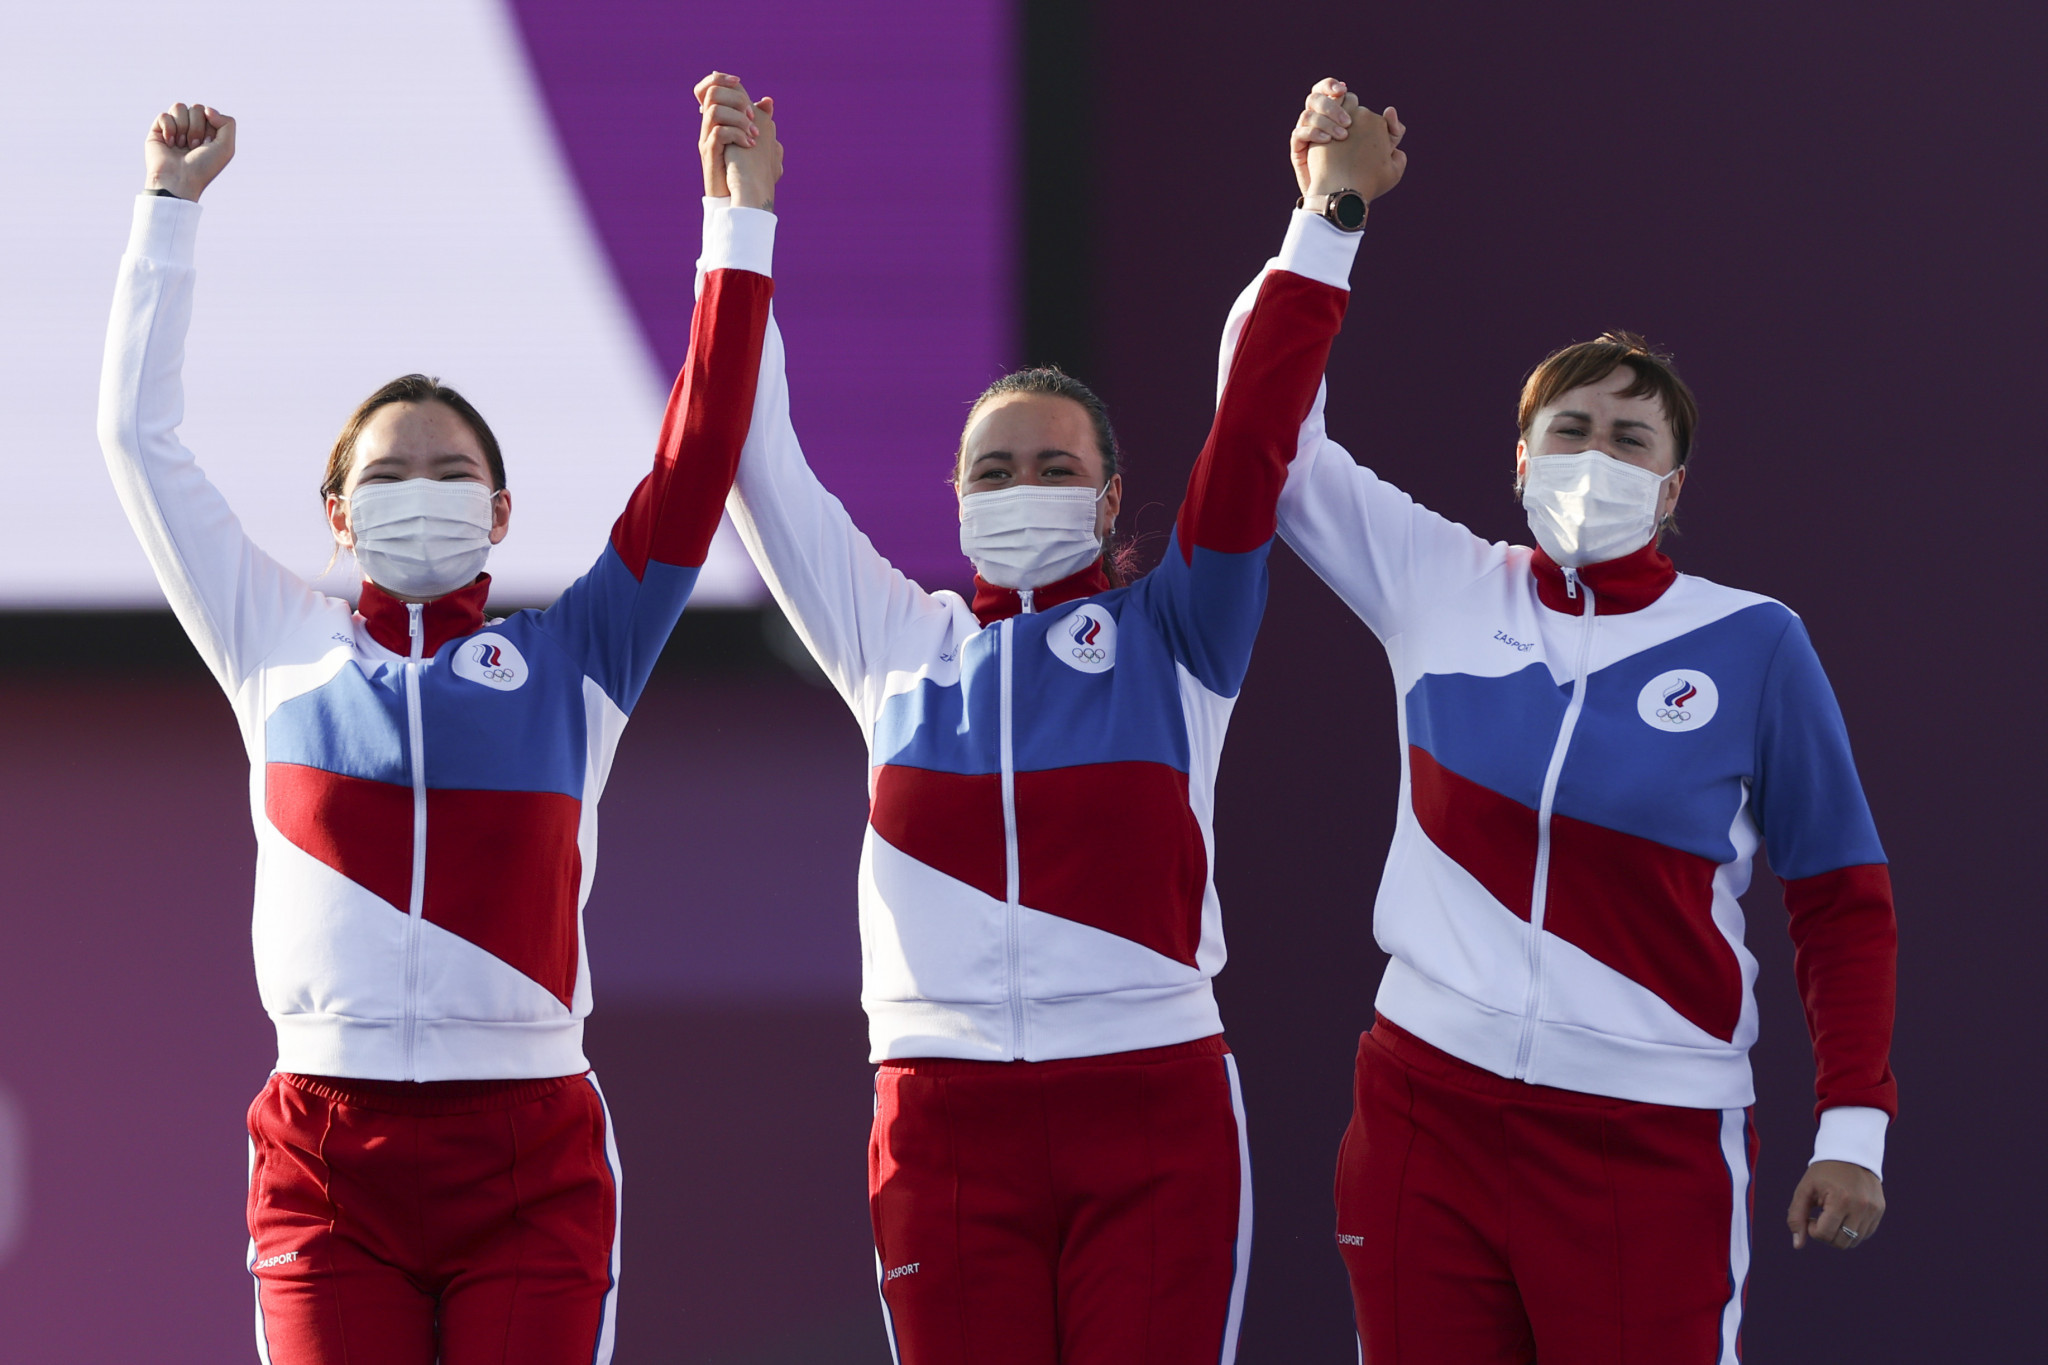 The Russian Olympic Committee team were pleased with their silver medals, despite the comprehensive manner of their defeat to South Korea ©Getty Images